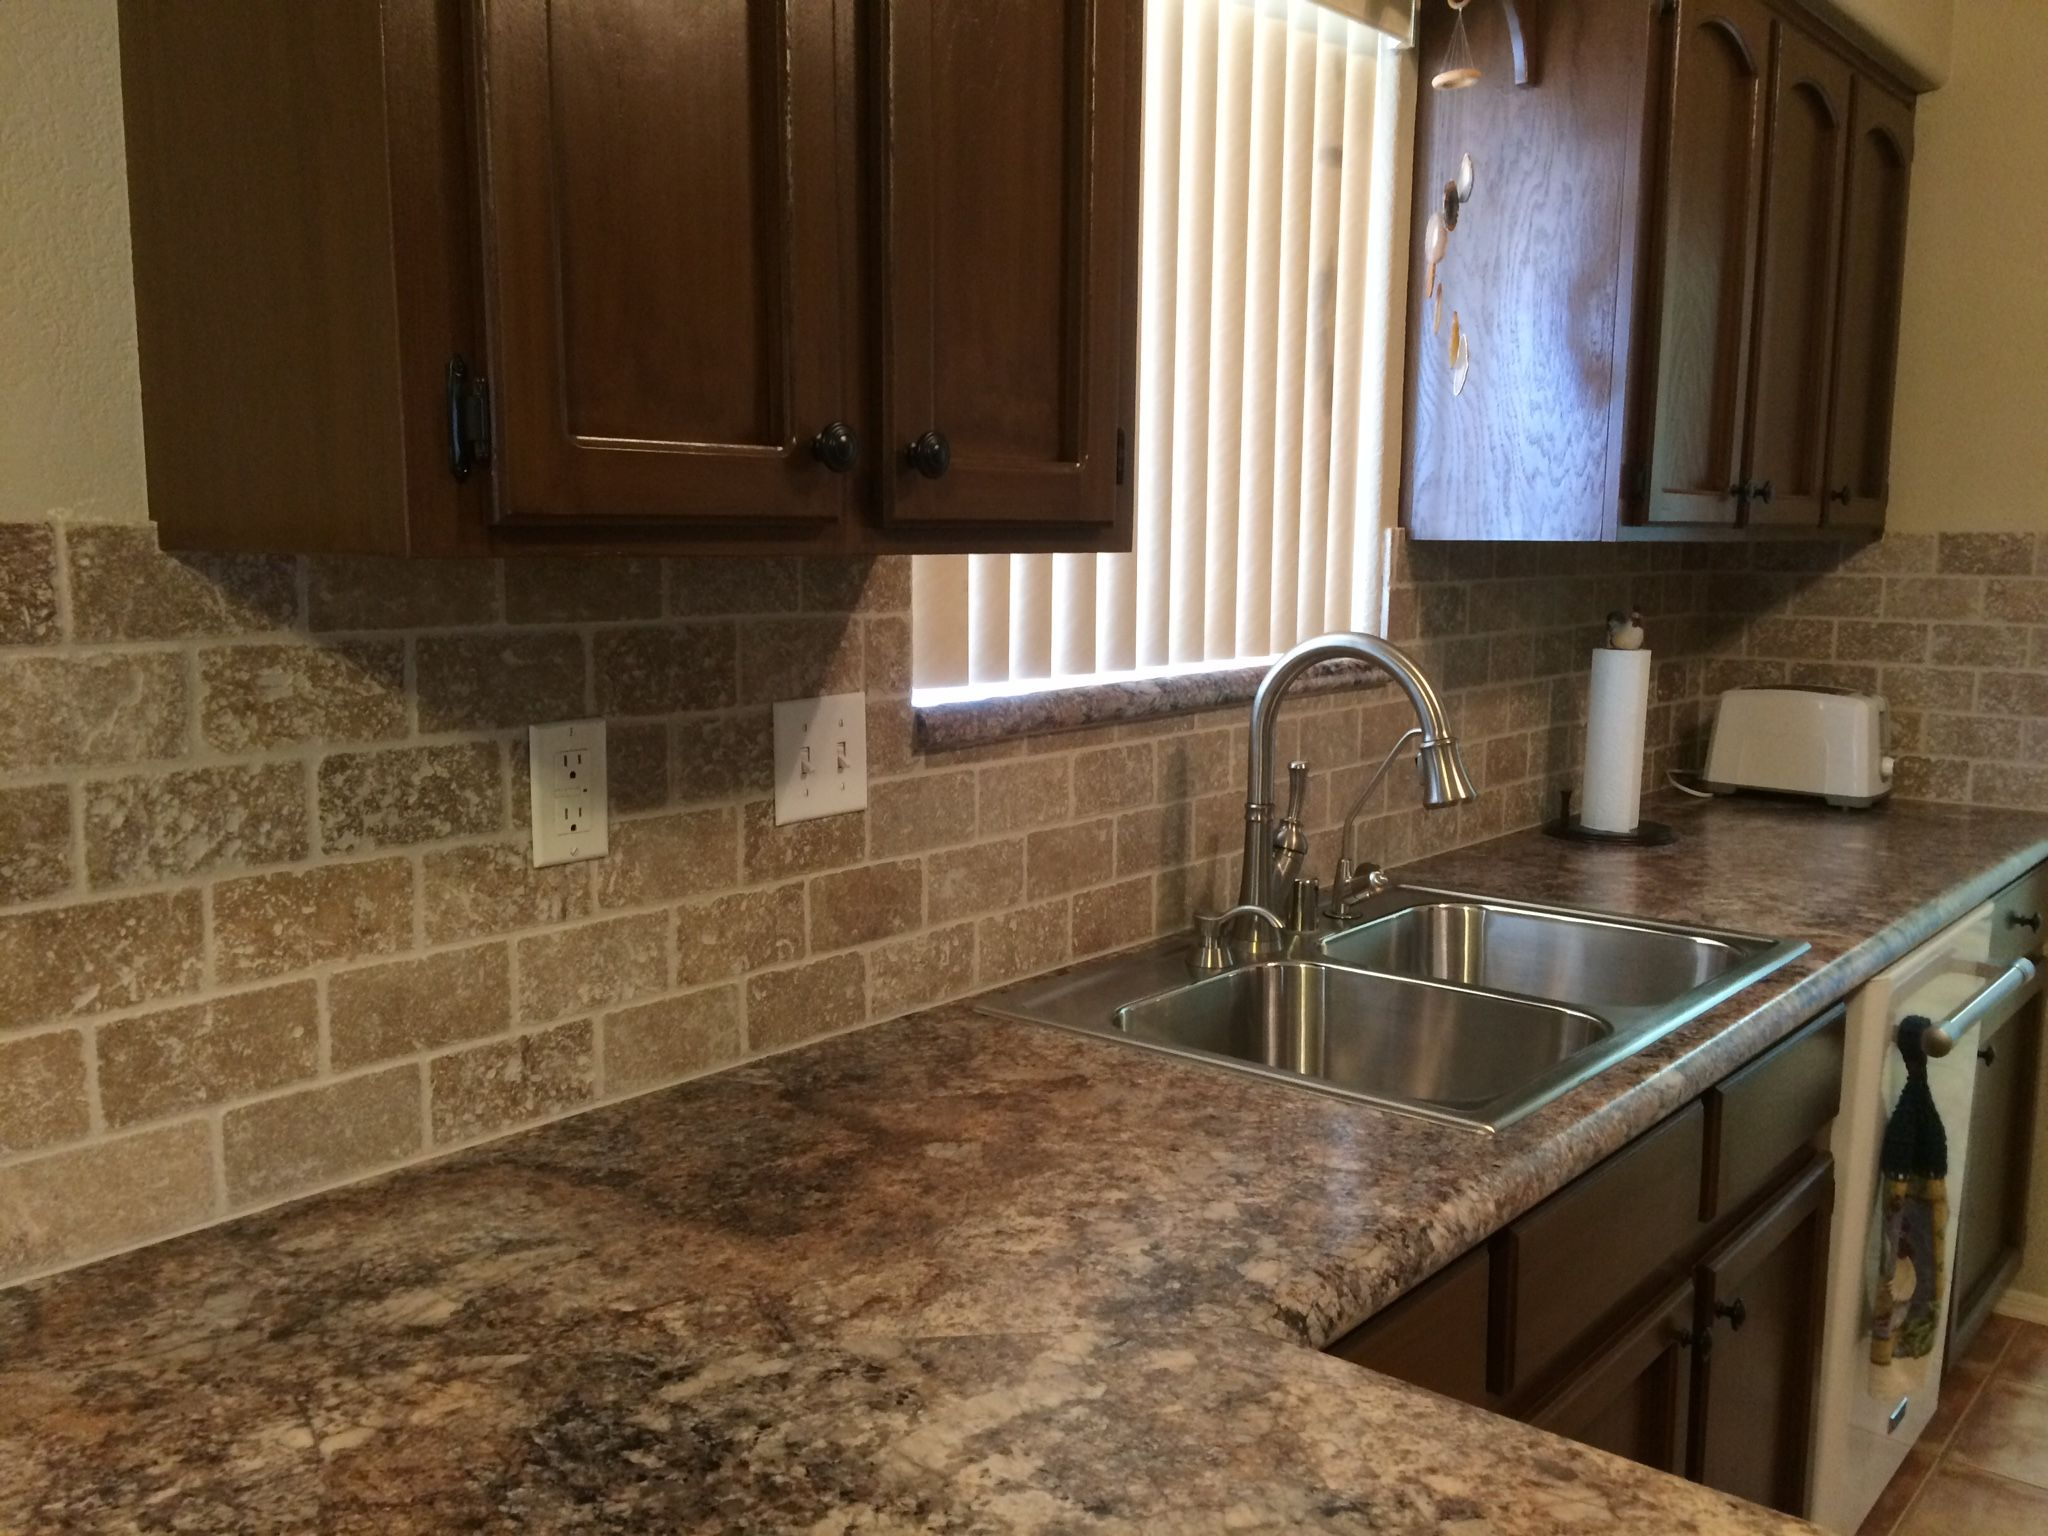 Laminate Kitchen Backsplash Formica 39s Quotantique Mascarello Quot Counter With Tumbled Noce 3